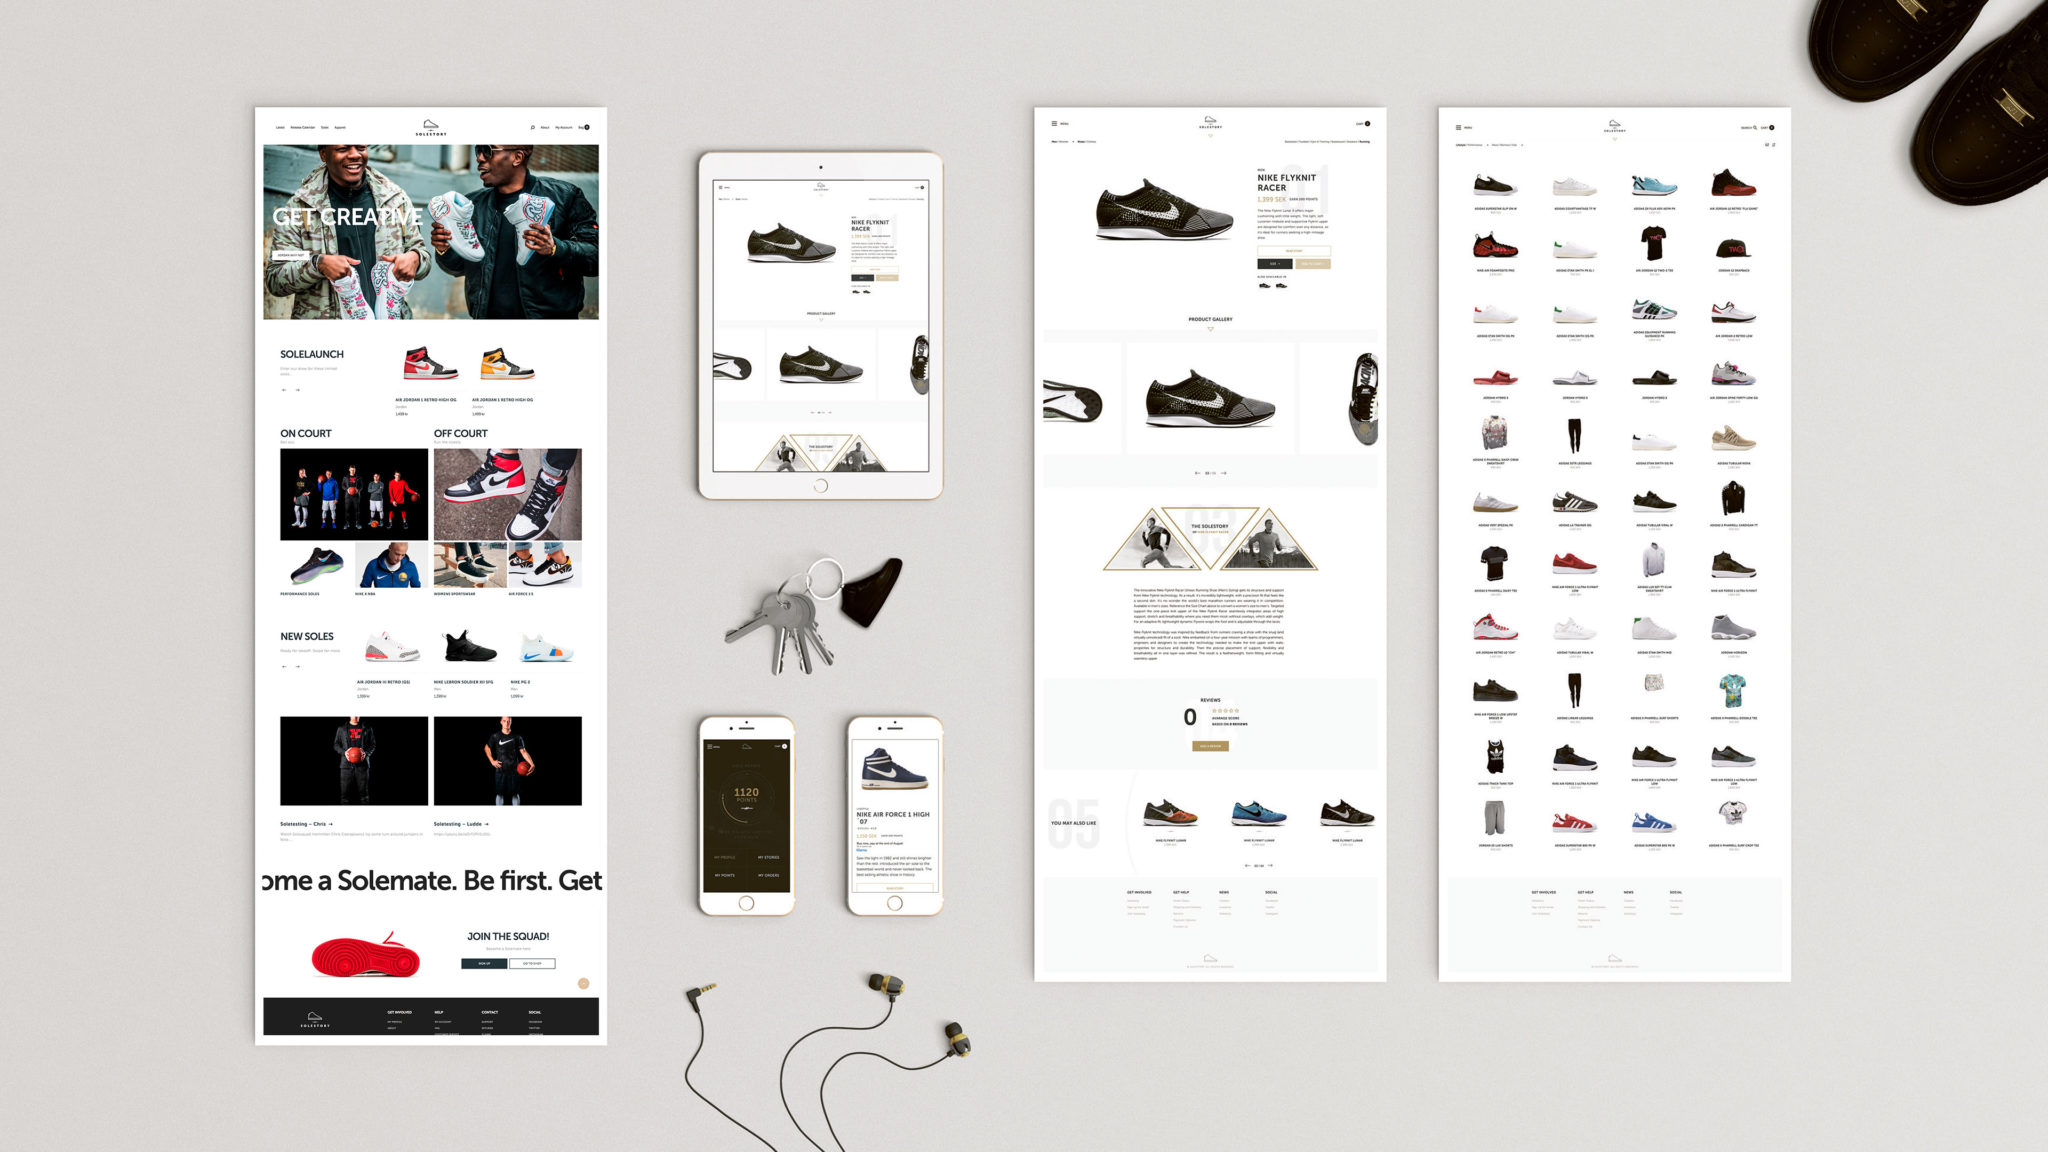 Solestory - Case Overview 1 - FMCA